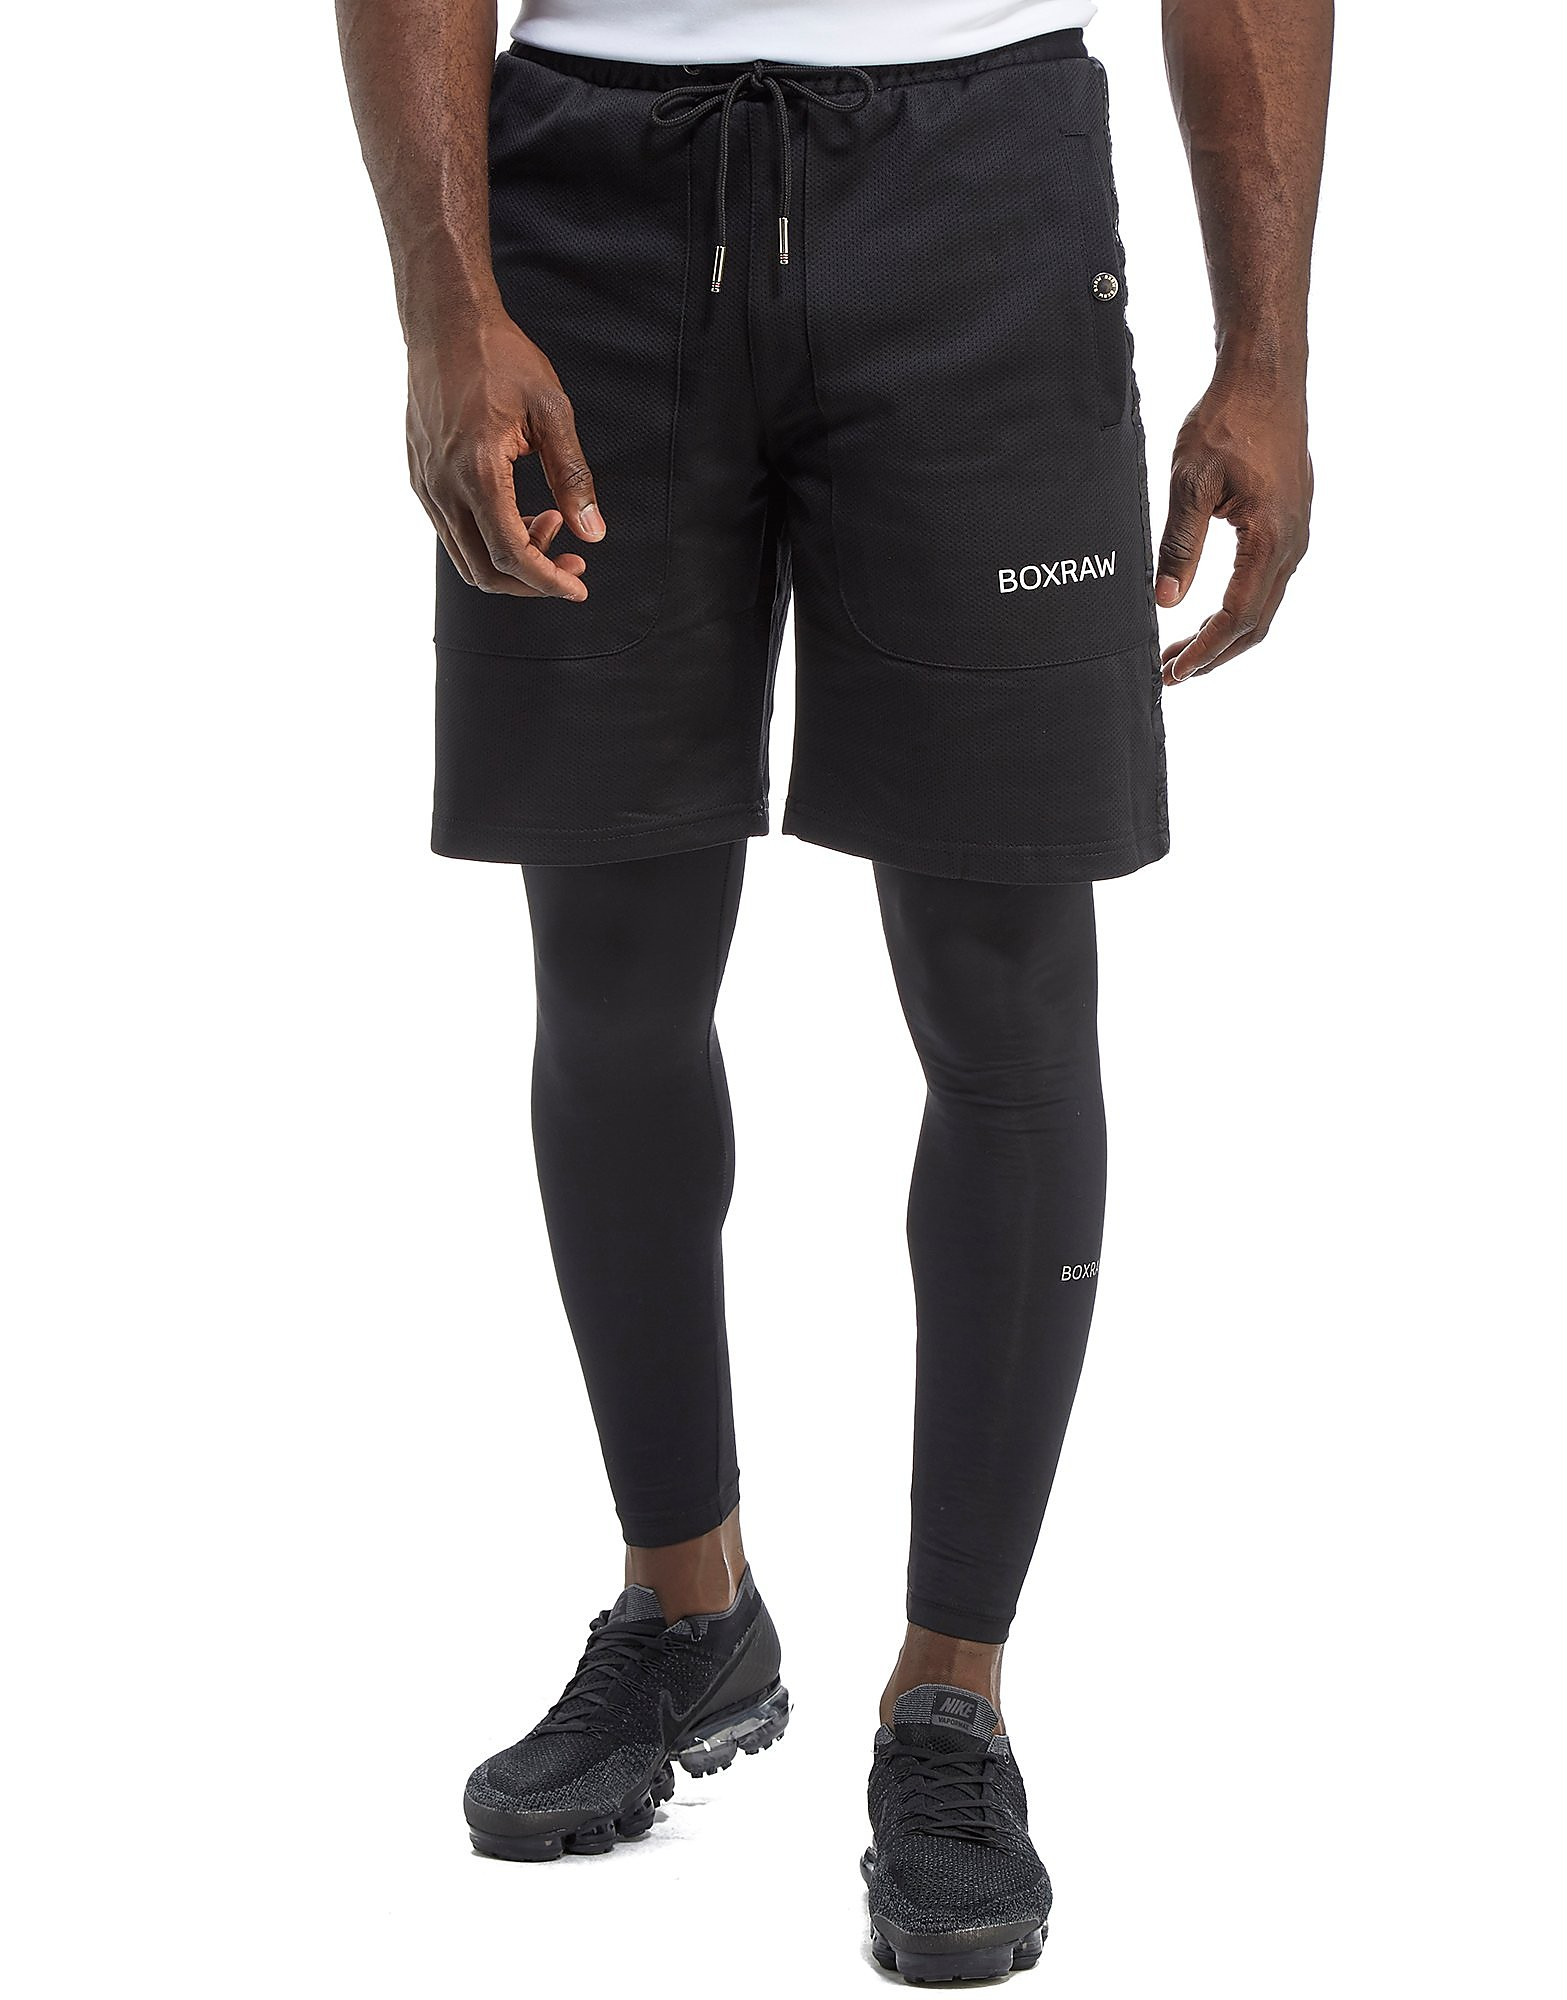 BOXRAW Pep Shorts (2-in-1 Training Tights)